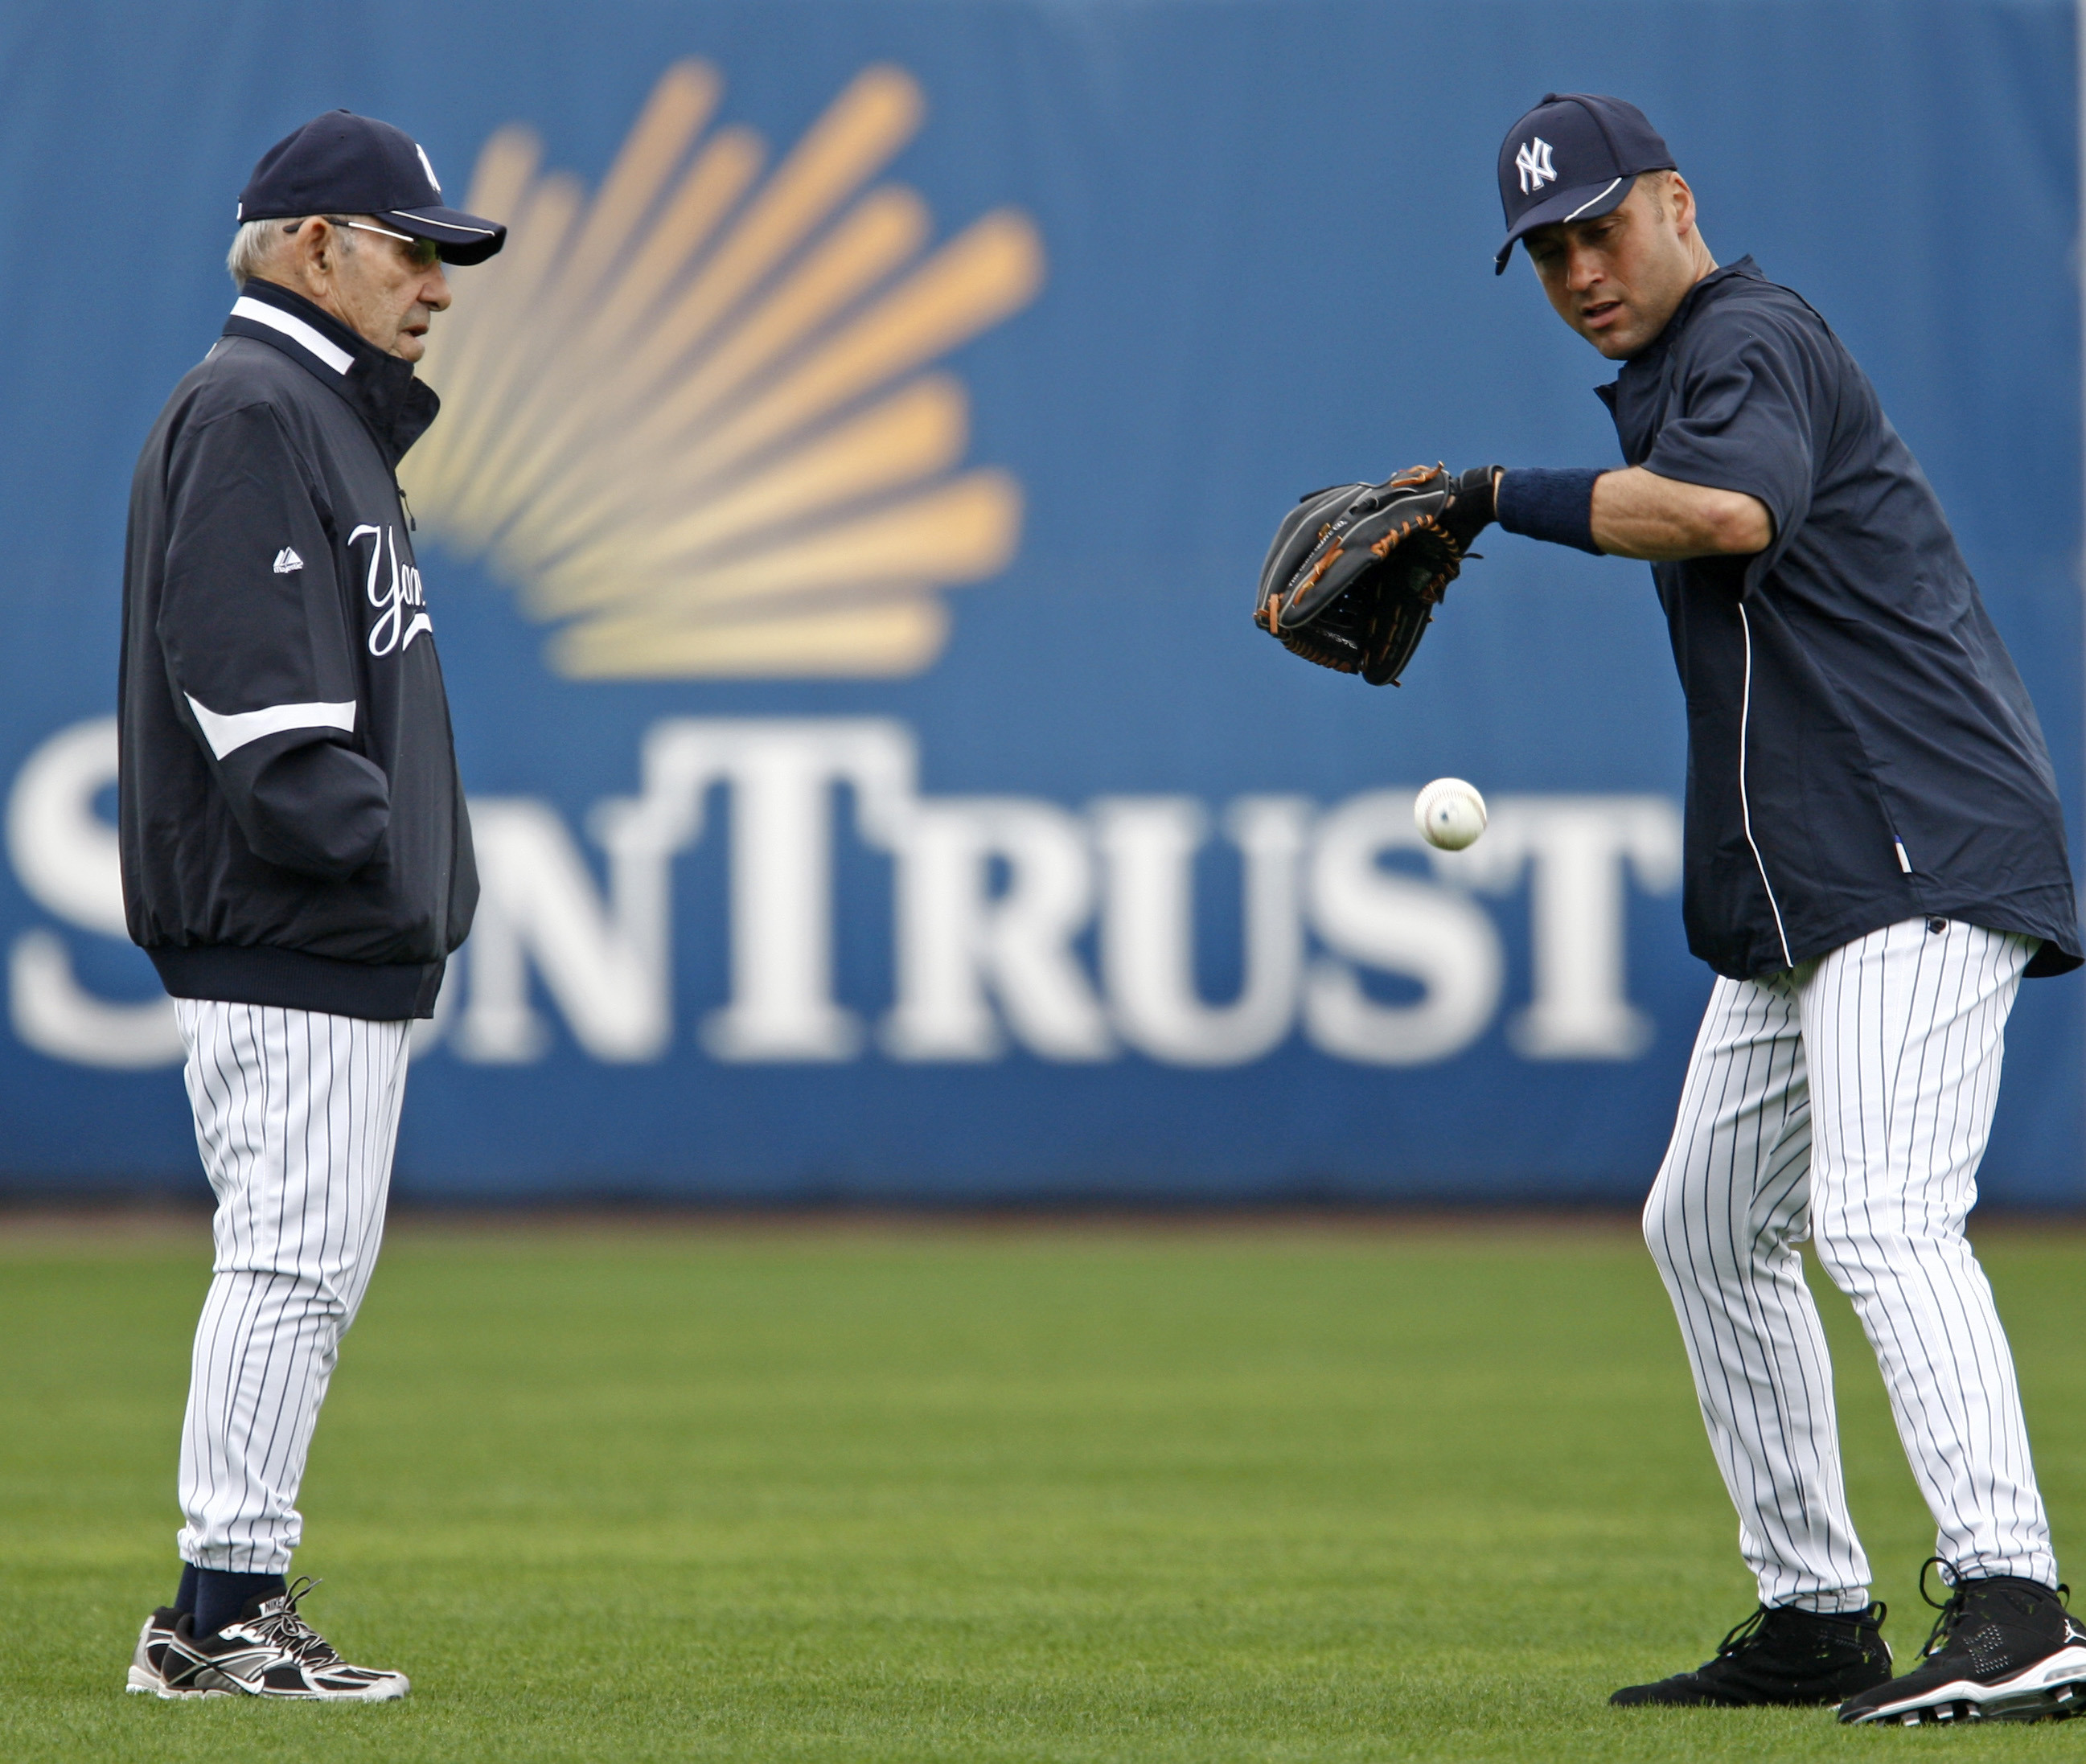 New York Yankees special adviser Yogi Berra, left, watches shortstop Derek Jeter field a ball as the Yankees full squad worked out during baseball spring training at Steinbrenner Field in Tampa, Fla., Wednesday, Feb. 24, 2010.  (AP Photo/Kathy Willens)